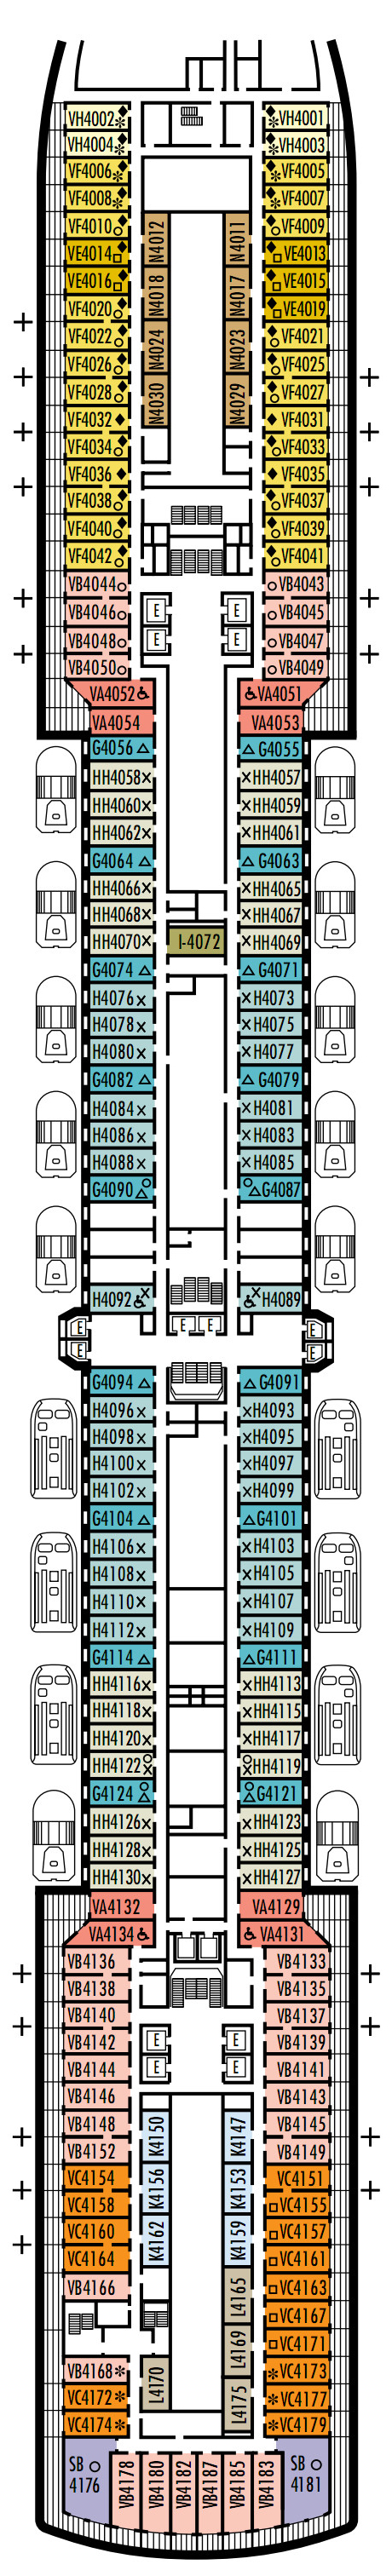 Eurodam Deck 4 - Upper Promenade layout